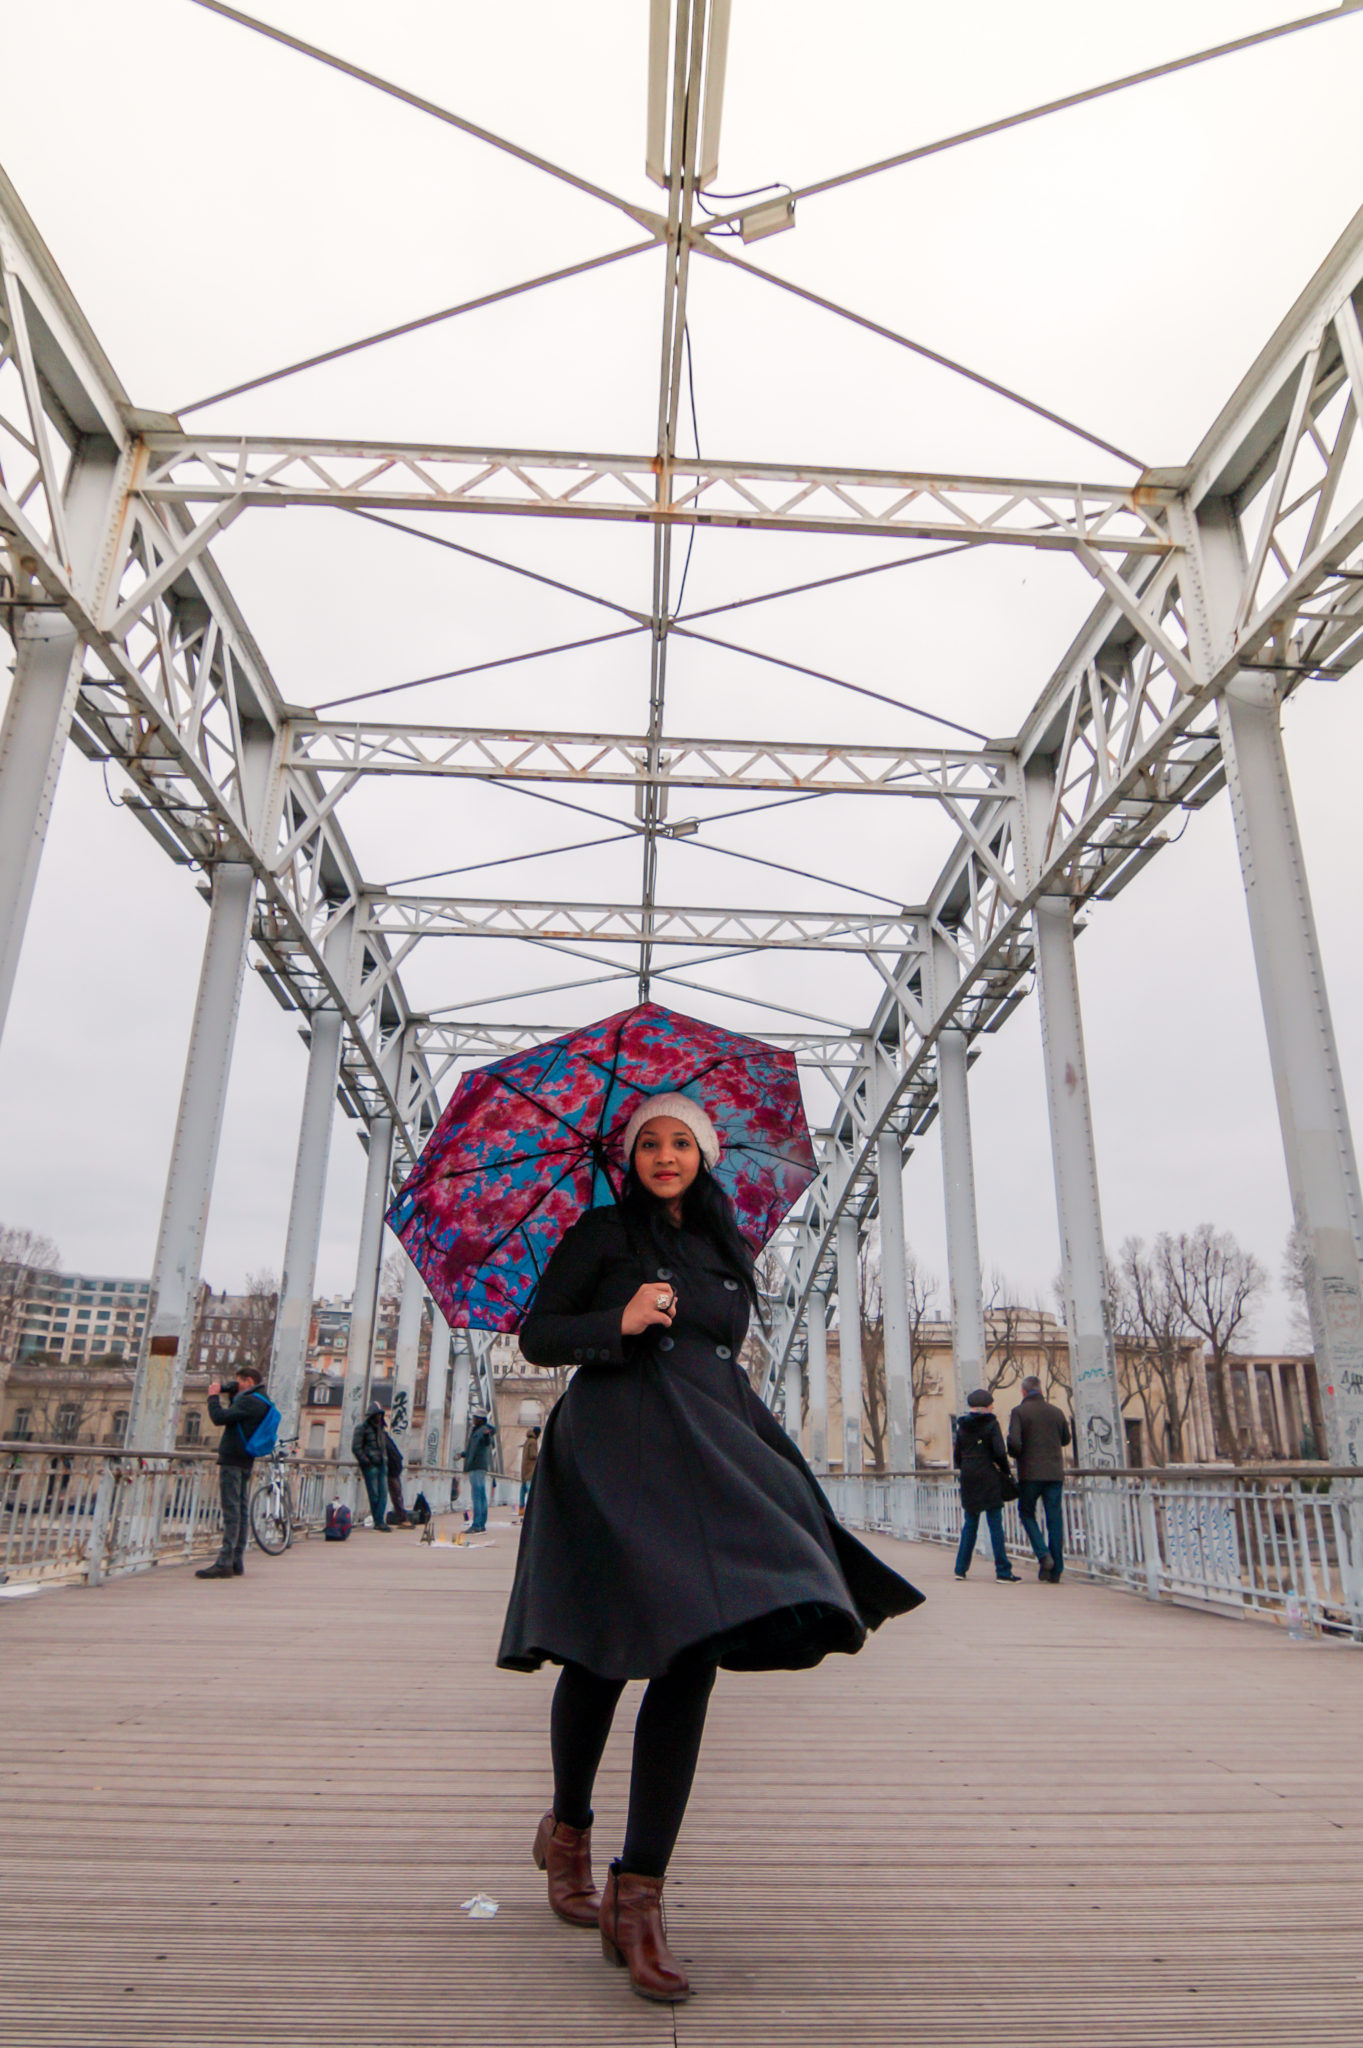 Hemaposesesvalises_Happysweeds_Cherry_Umbrella_manteau_max&co_winter_paris_blog_mode